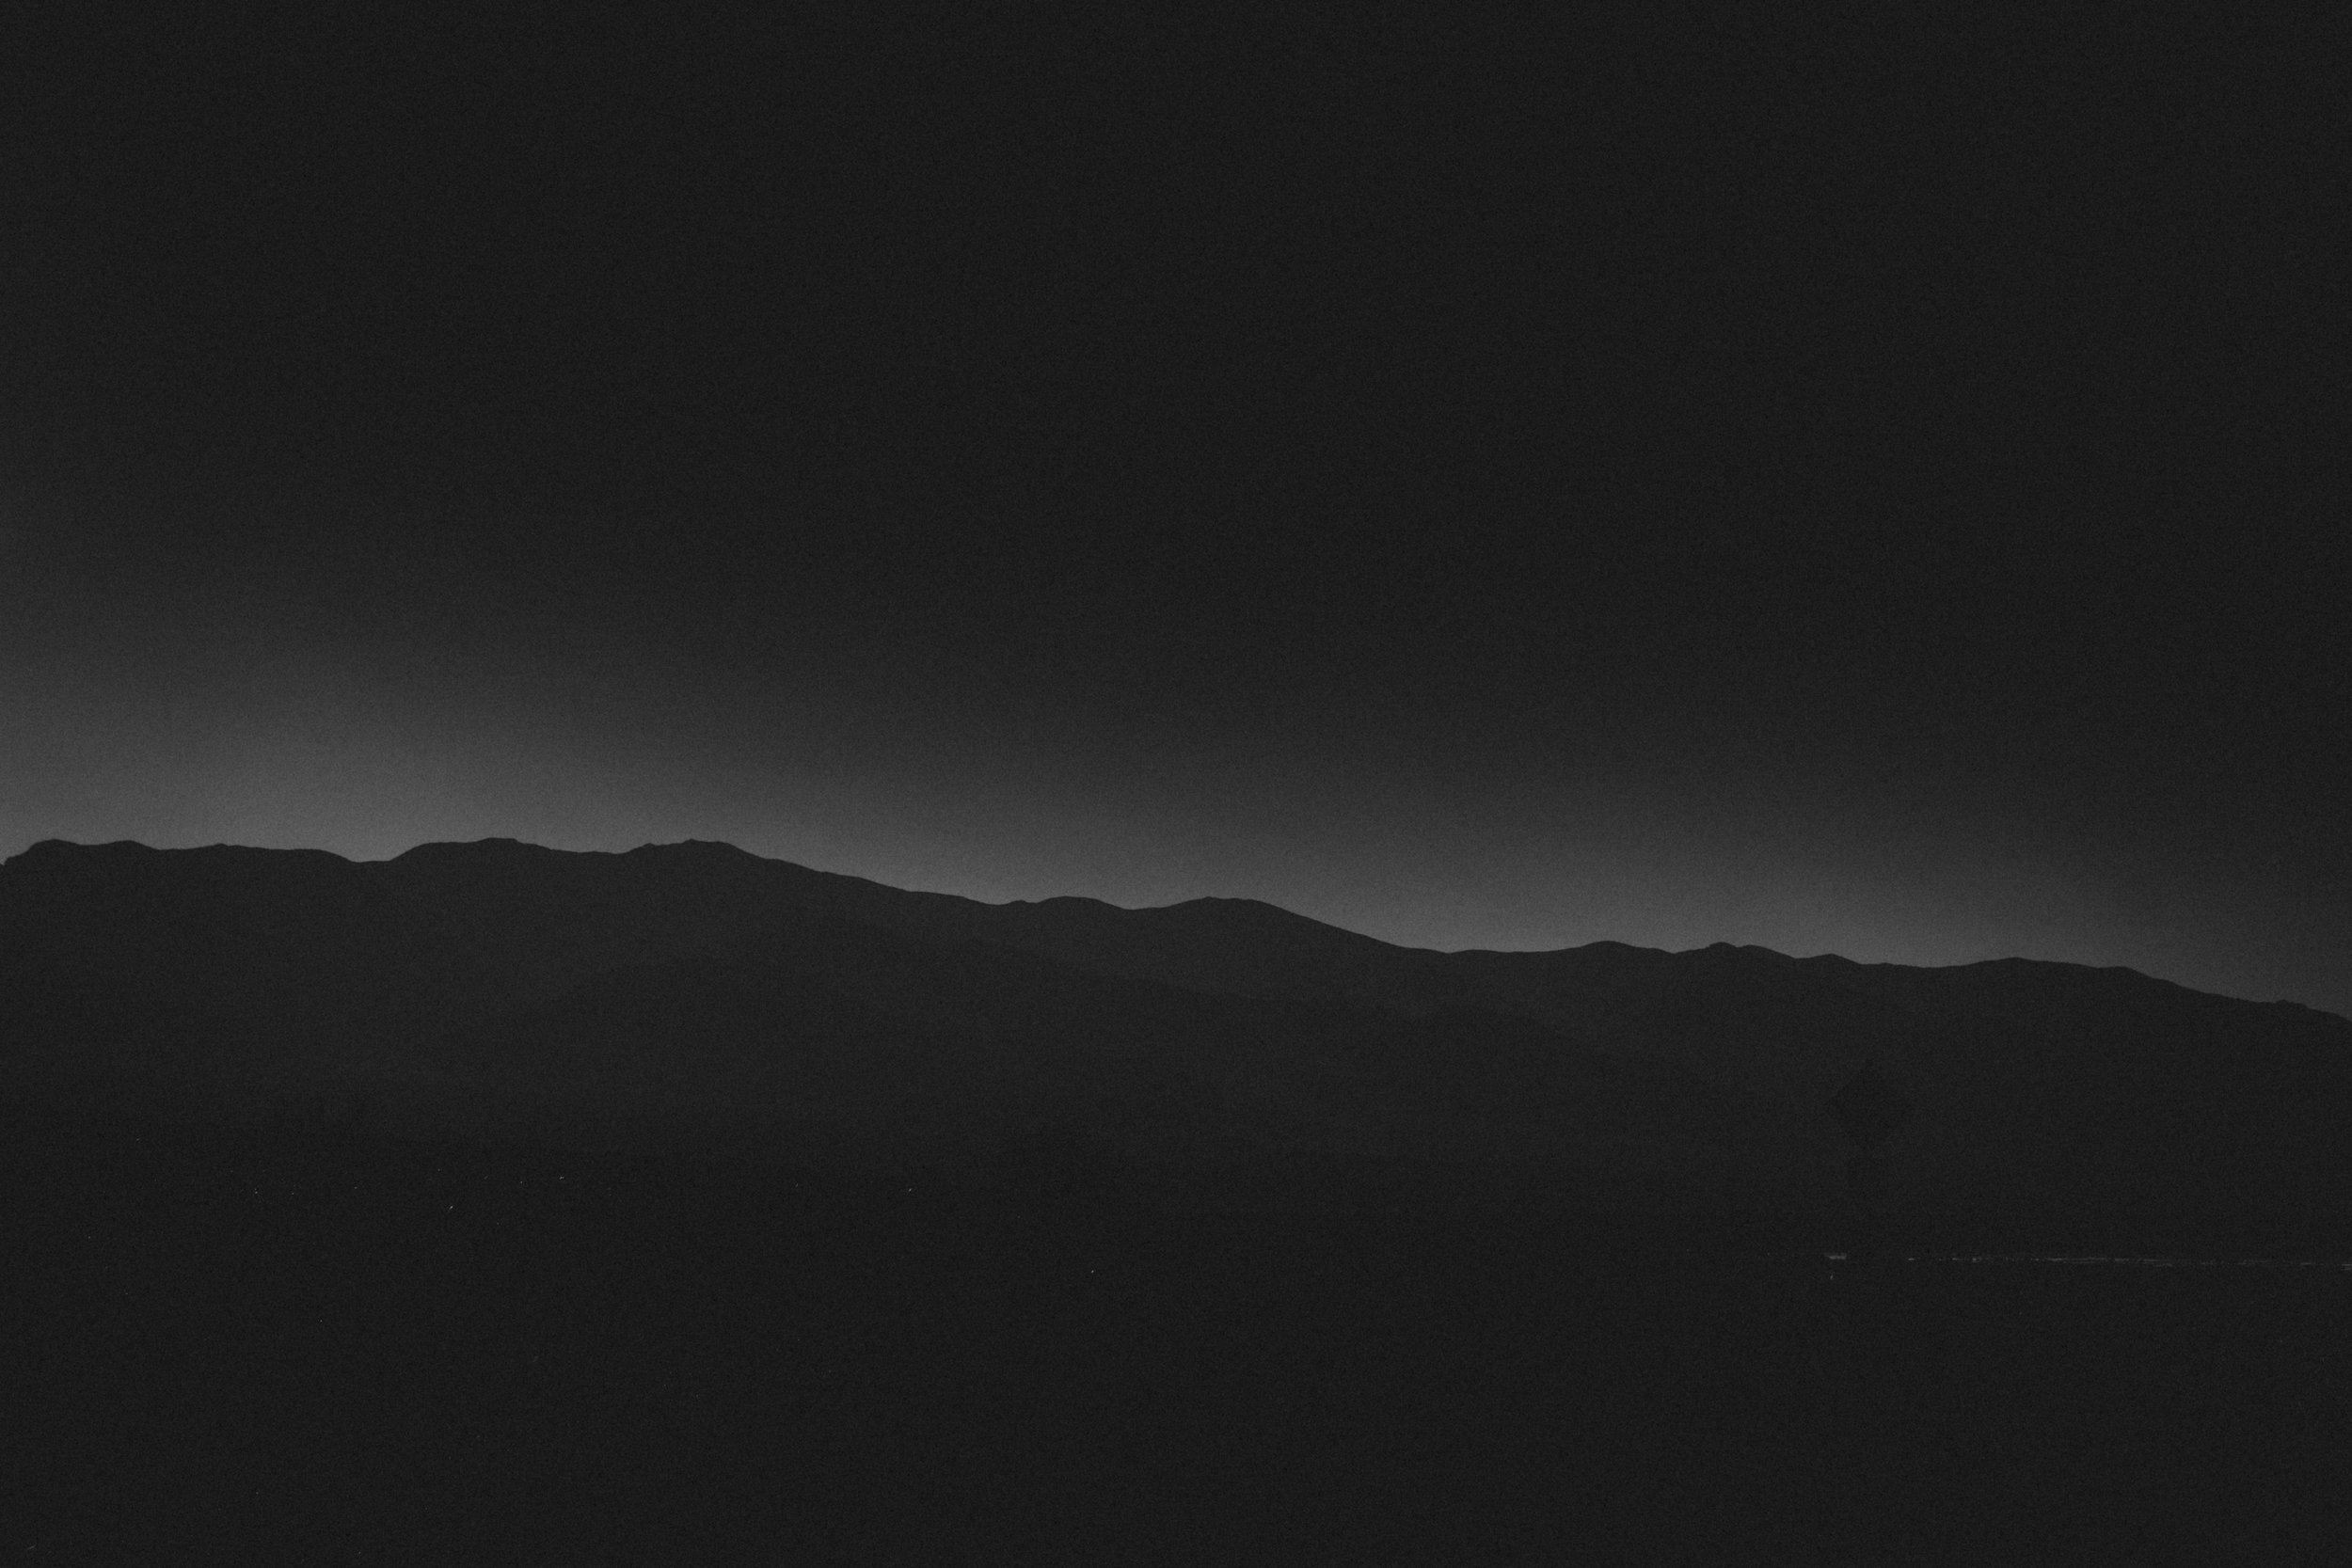 VIII. DEATH VALLEY, ON DARKNESS